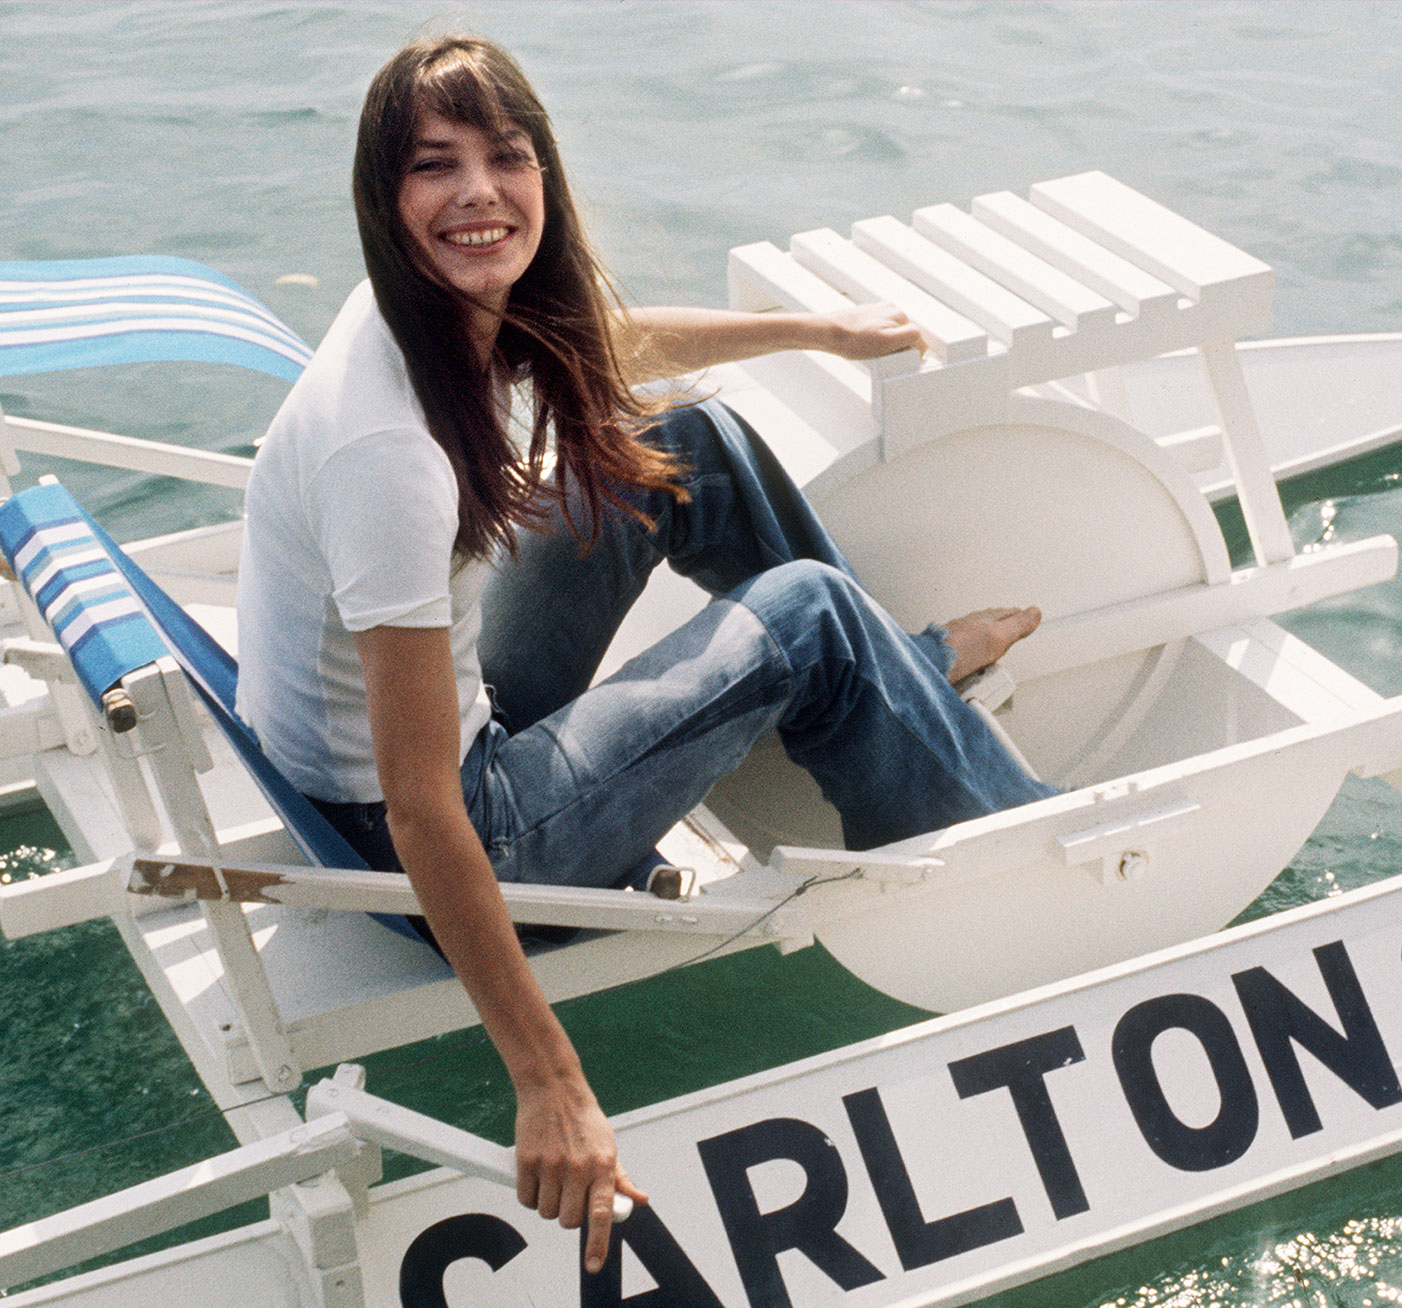 Jane Birkin In Cannes  |  Top Flight: VIOLET BEACHES  |  #VioletGrey, The Industry's Beauty Edit